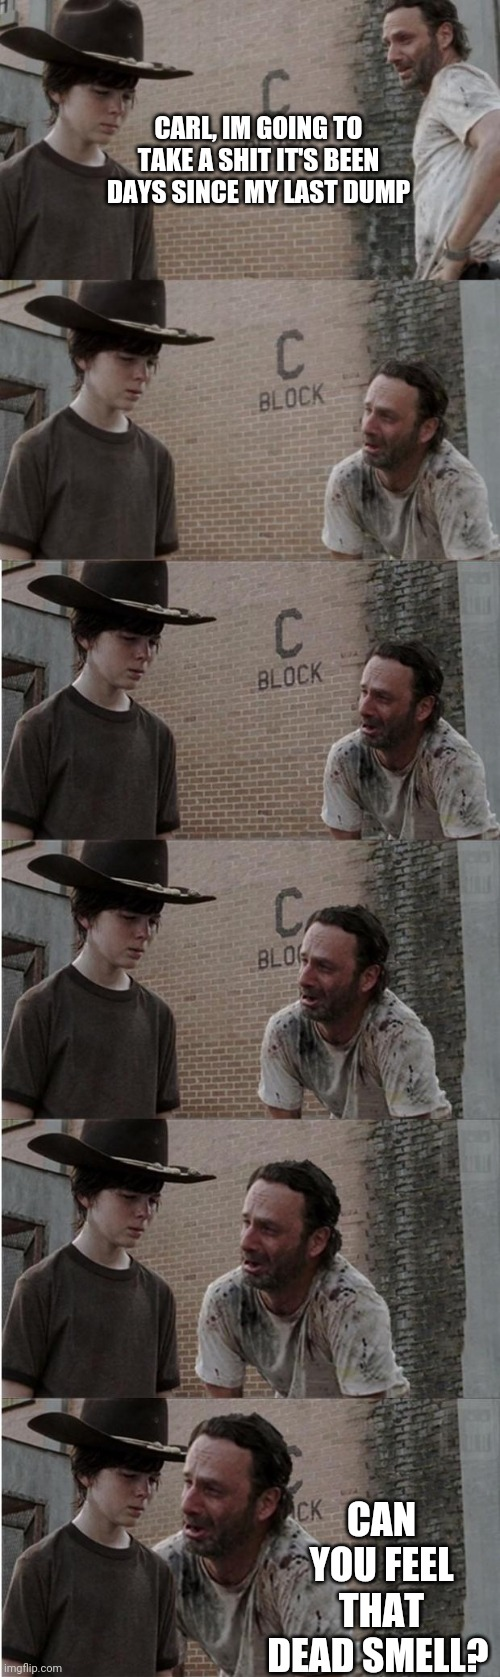 Rick and Carl Longer |  CARL, IM GOING TO TAKE A SHIT IT'S BEEN DAYS SINCE MY LAST DUMP; CAN YOU FEEL THAT DEAD SMELL? | image tagged in memes,rick and carl longer | made w/ Imgflip meme maker